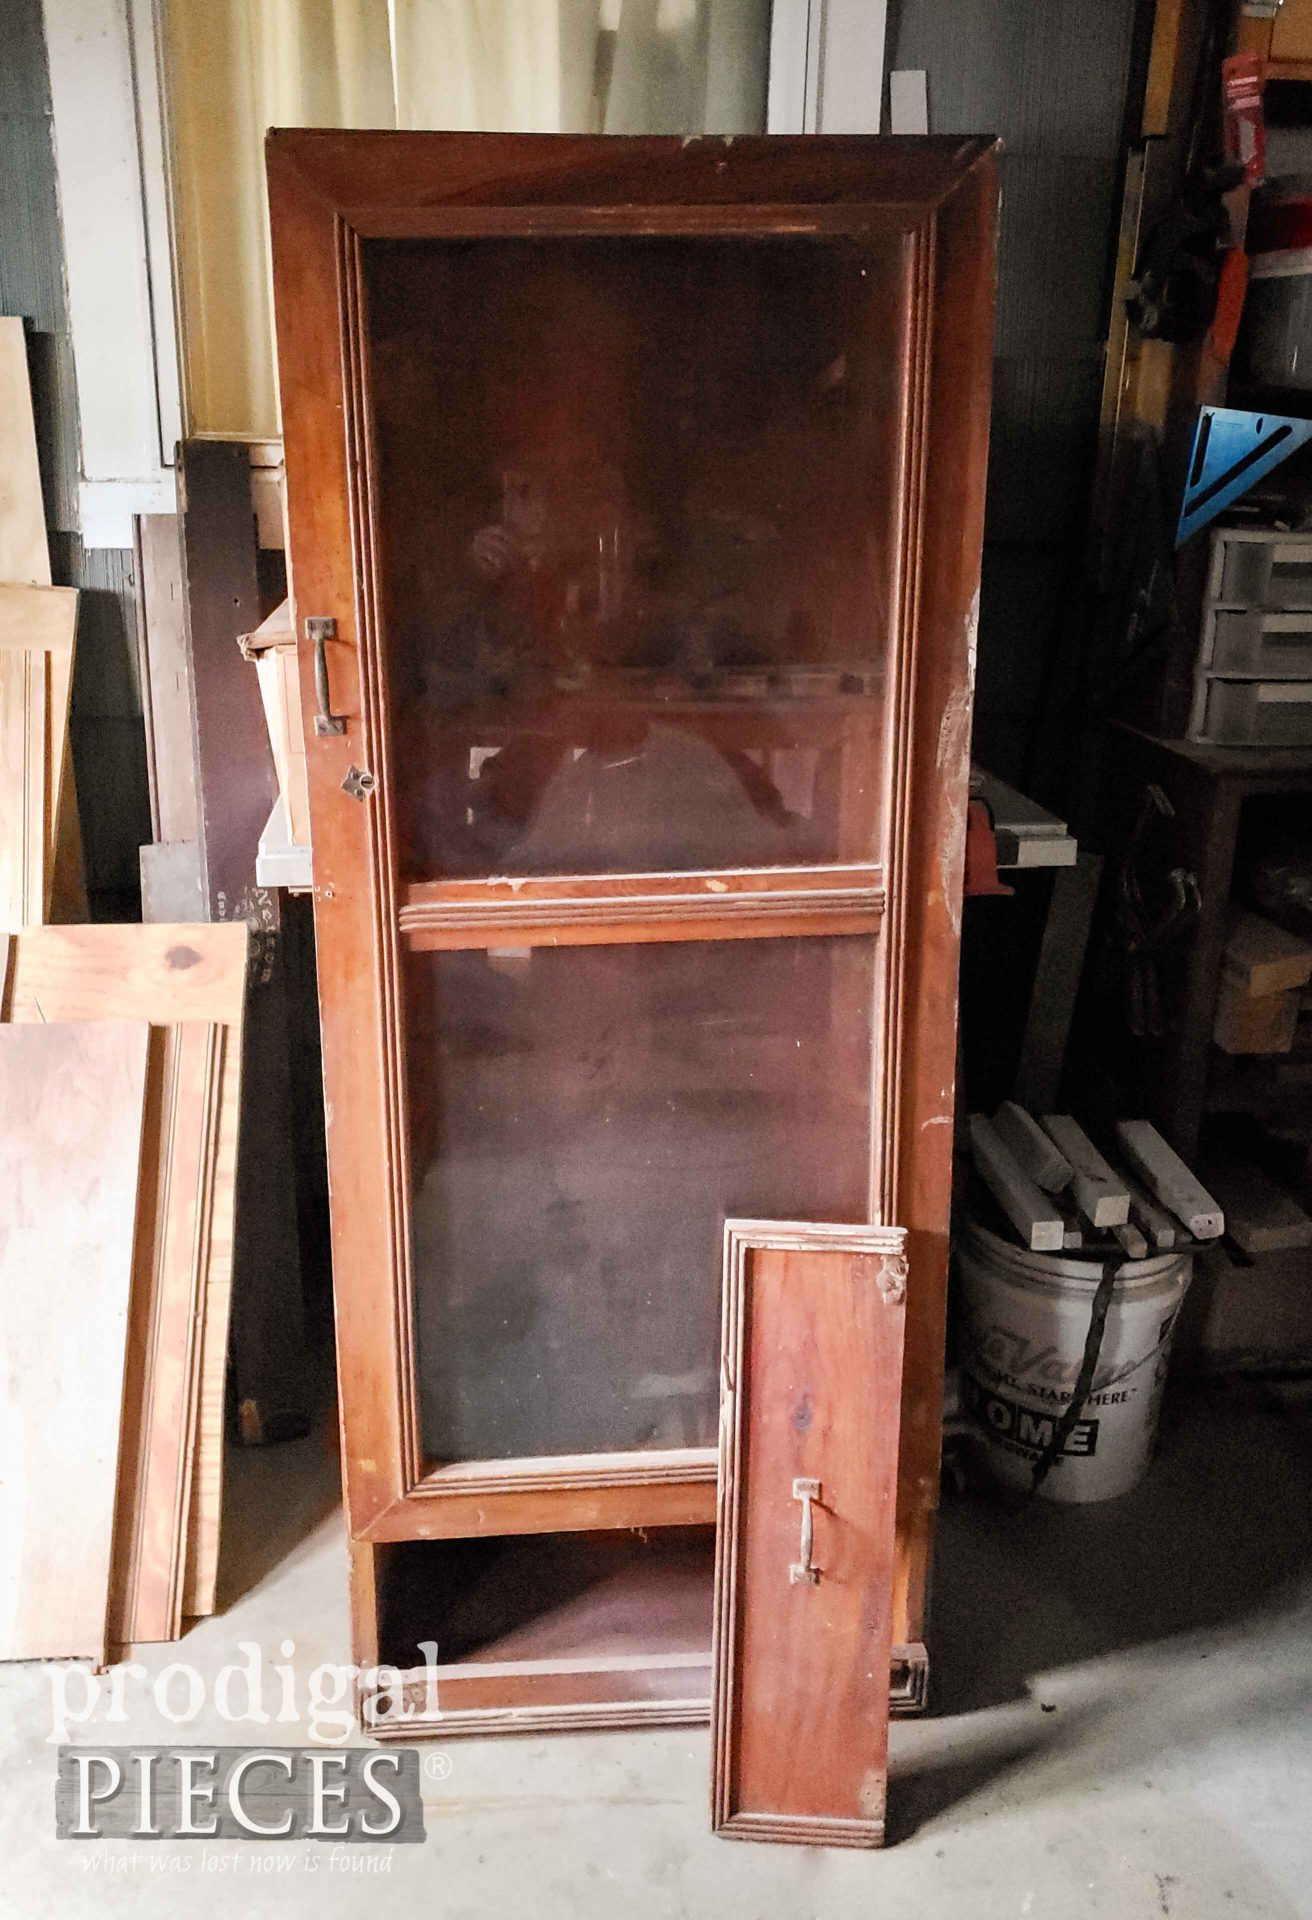 Handmade Gun Cabinet Before Makeover by Larissa of Prodigal Pieces | prodigalpieces.com